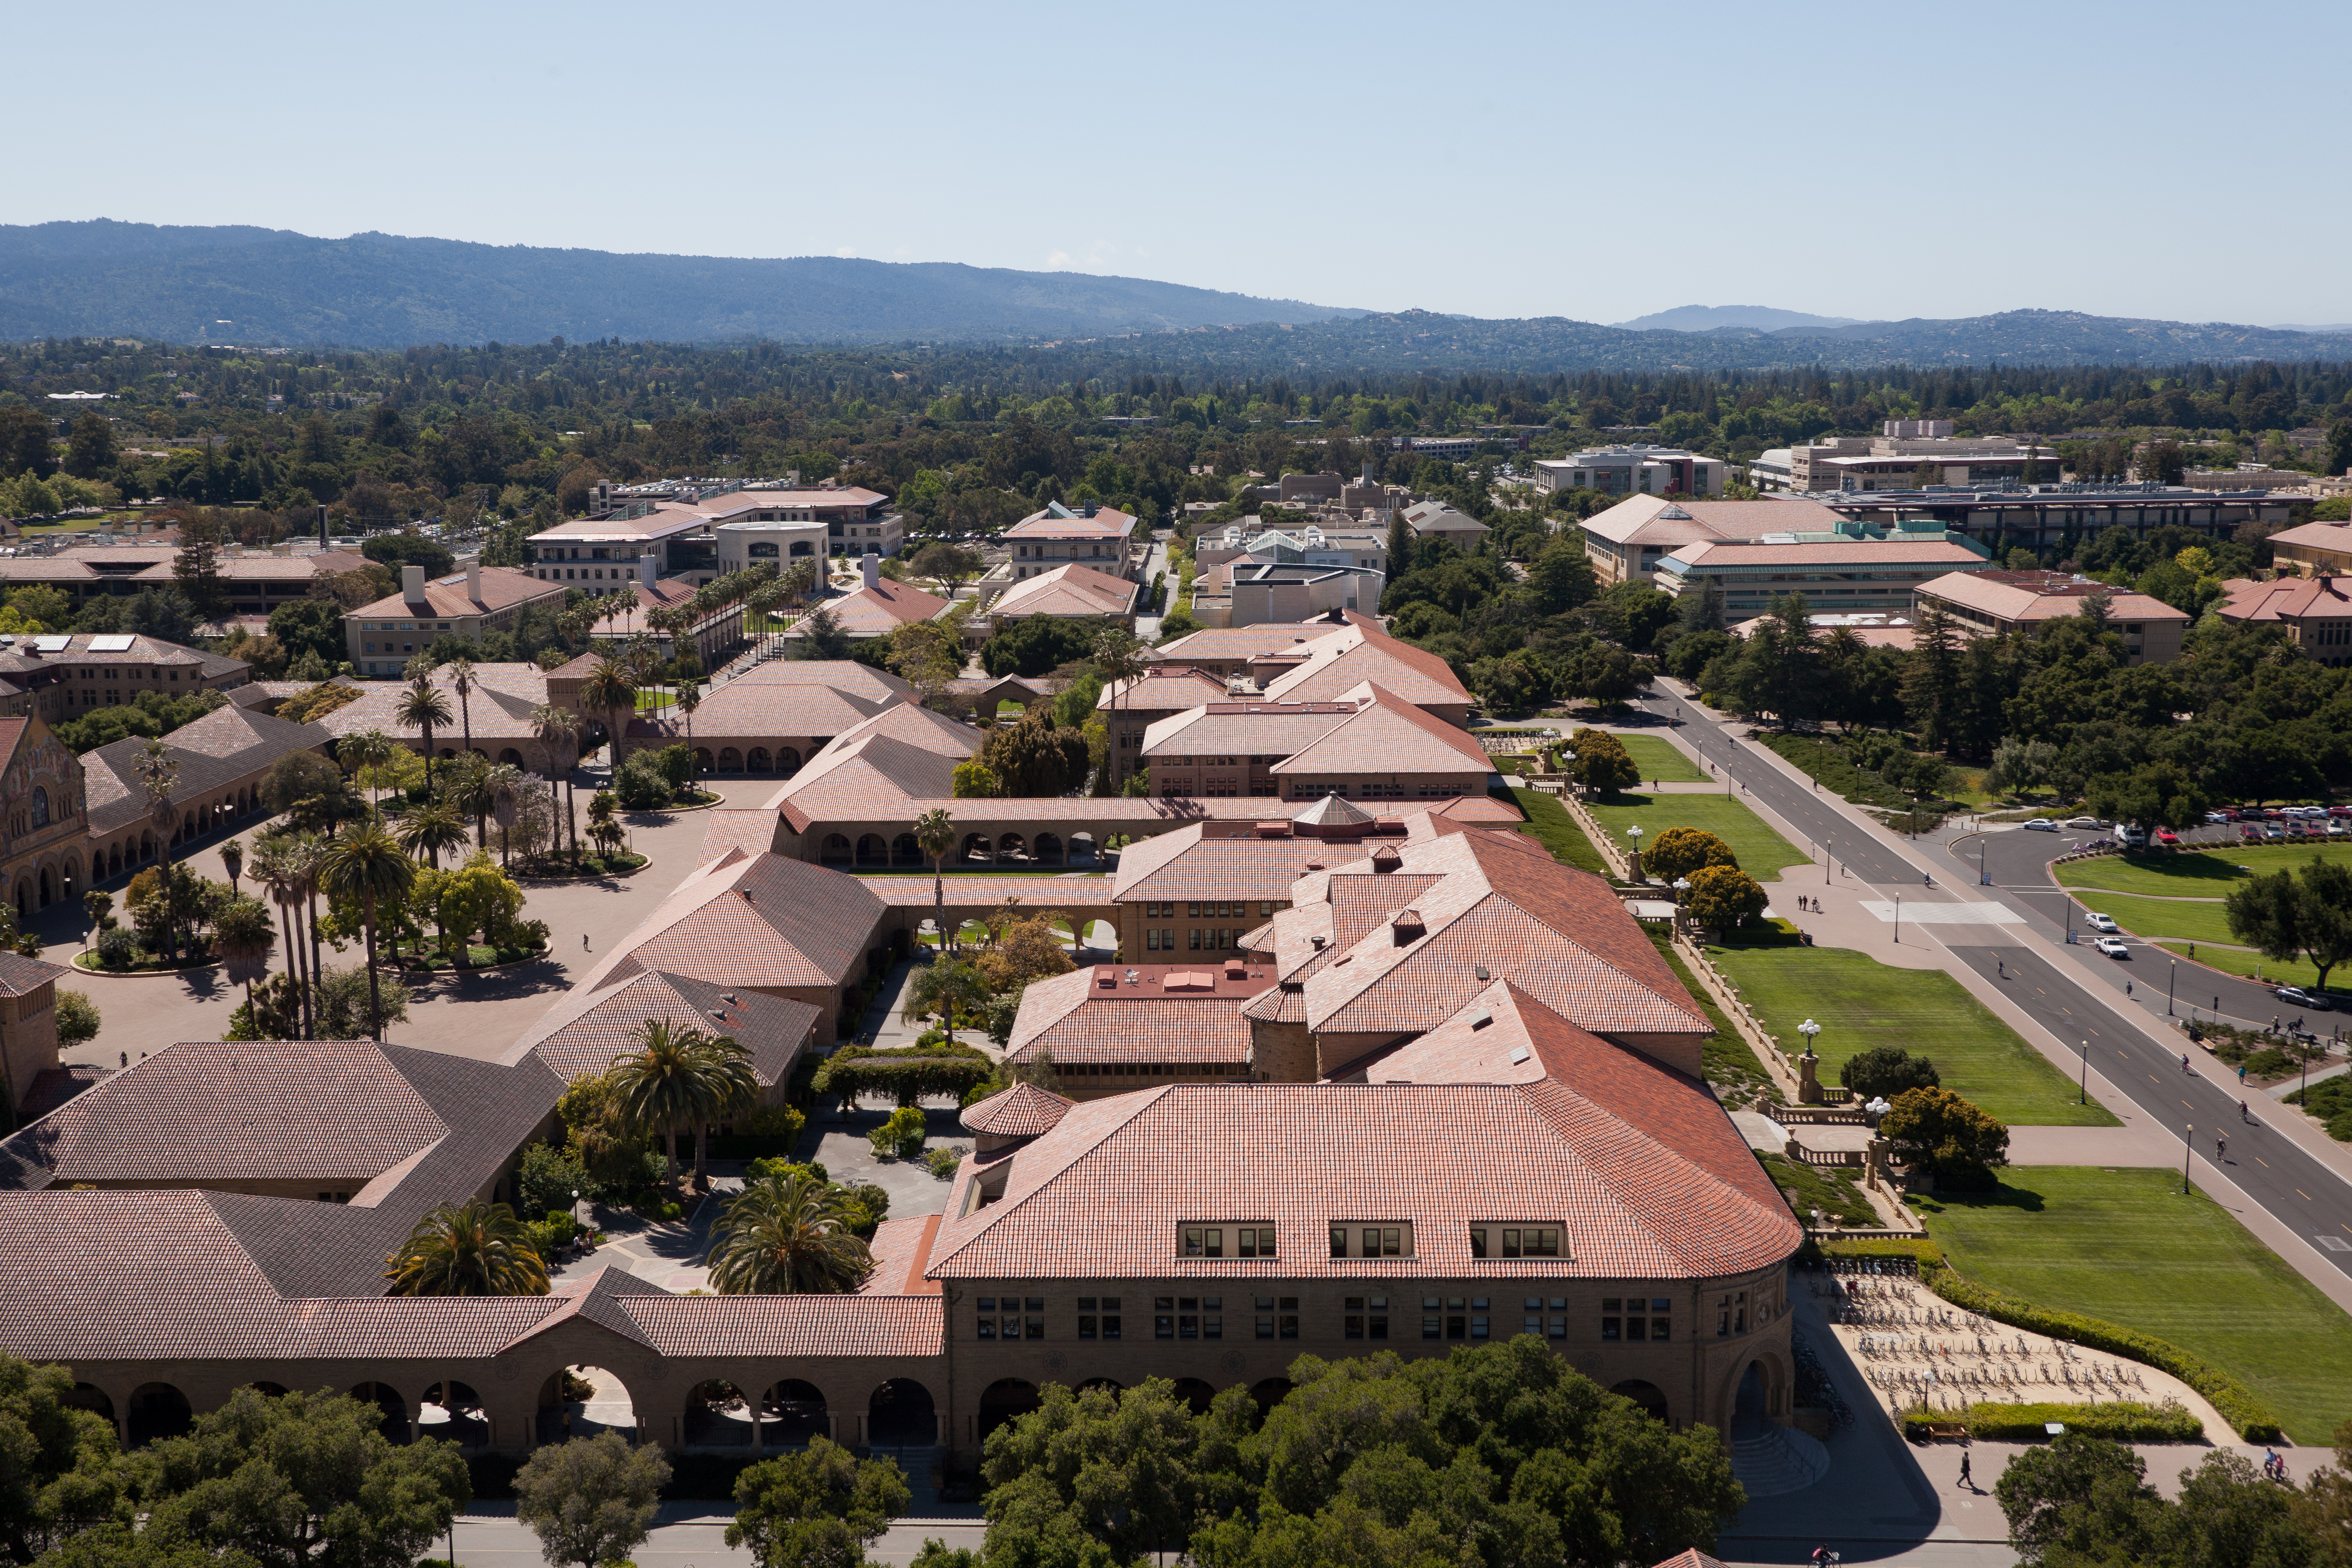 From the Hoover Tower one can see all of the Stanford campus. Pictured is the Main Quad and Serra Street.